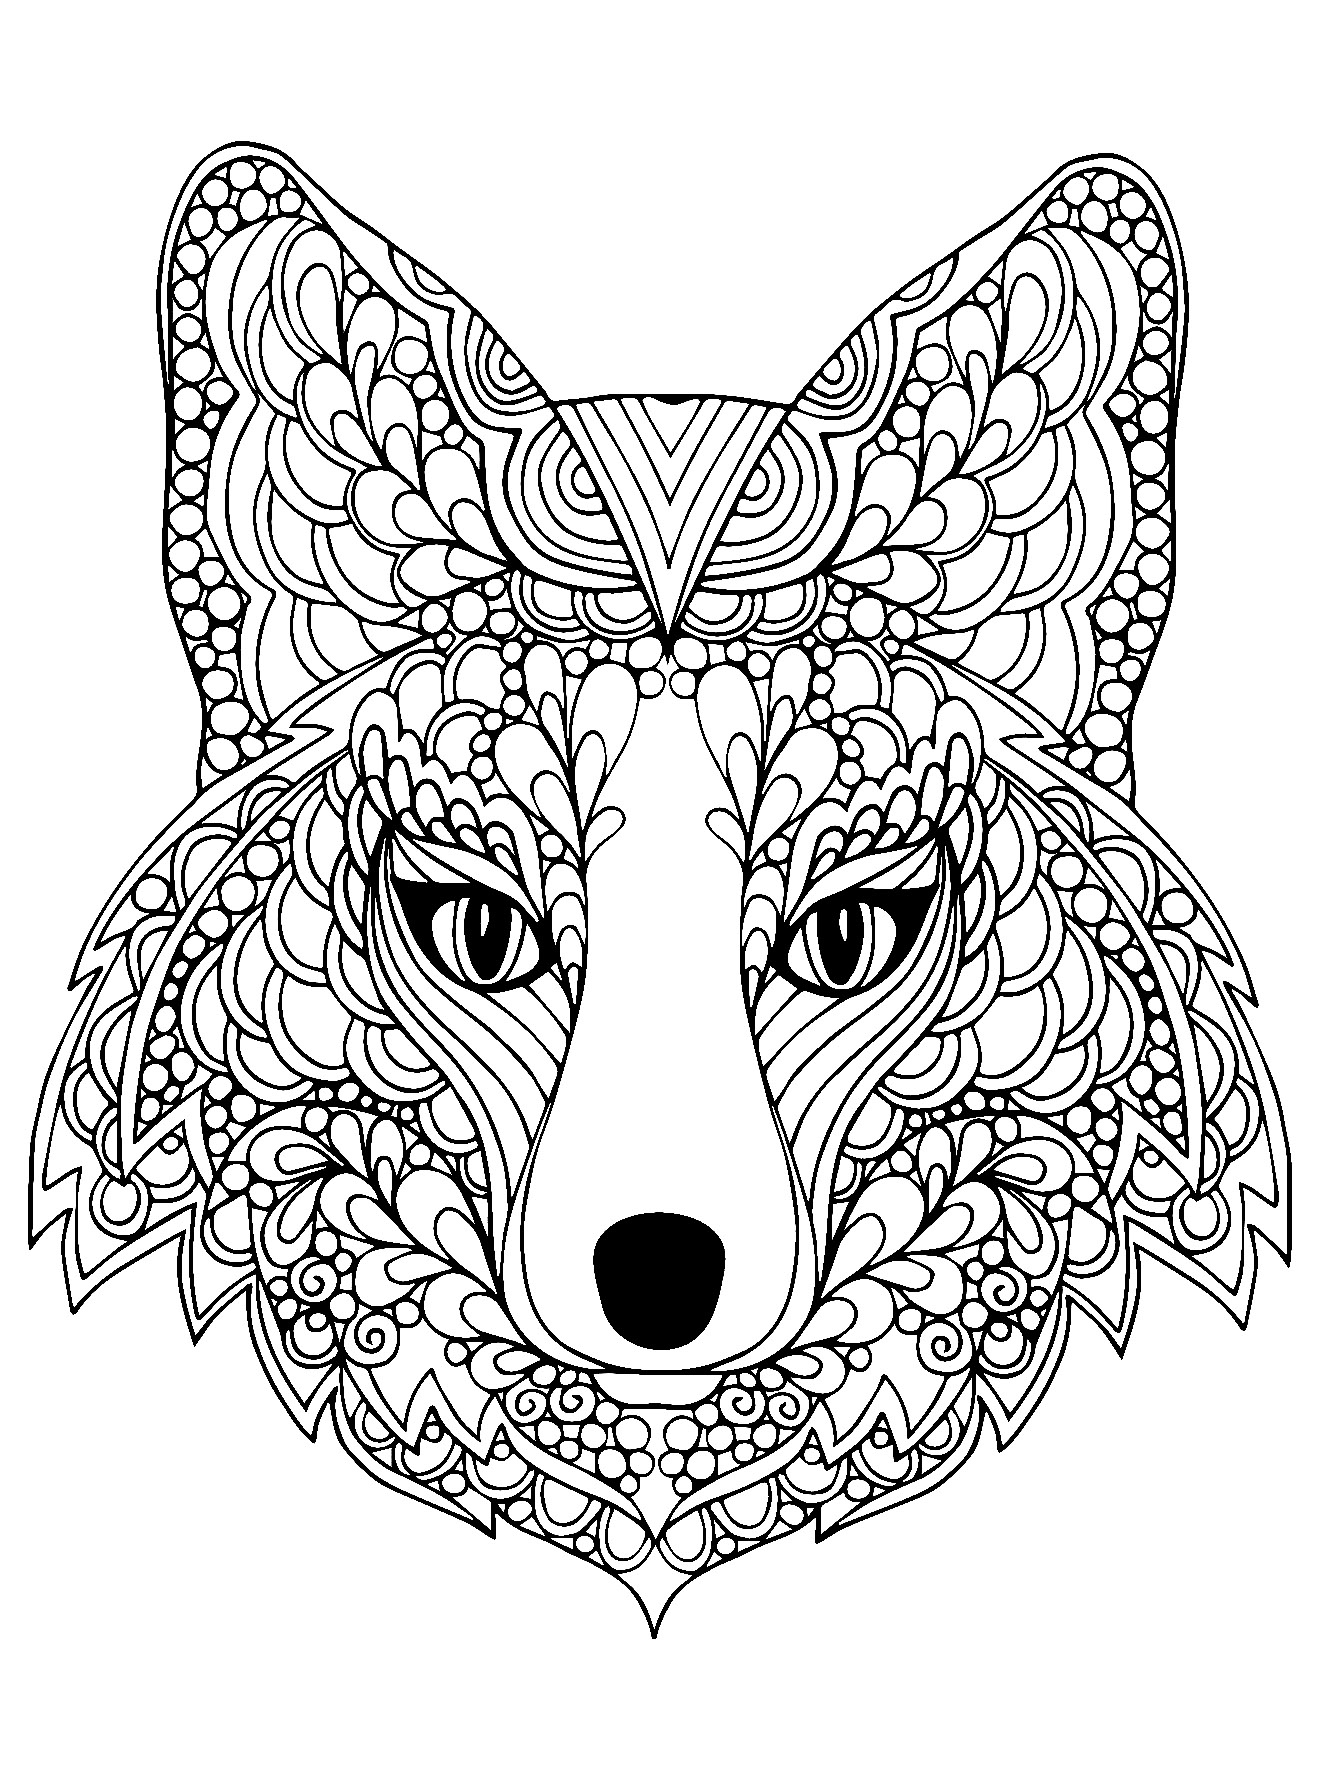 fox animal coloring pages desert fox coloring pages netart fox coloring pages animal